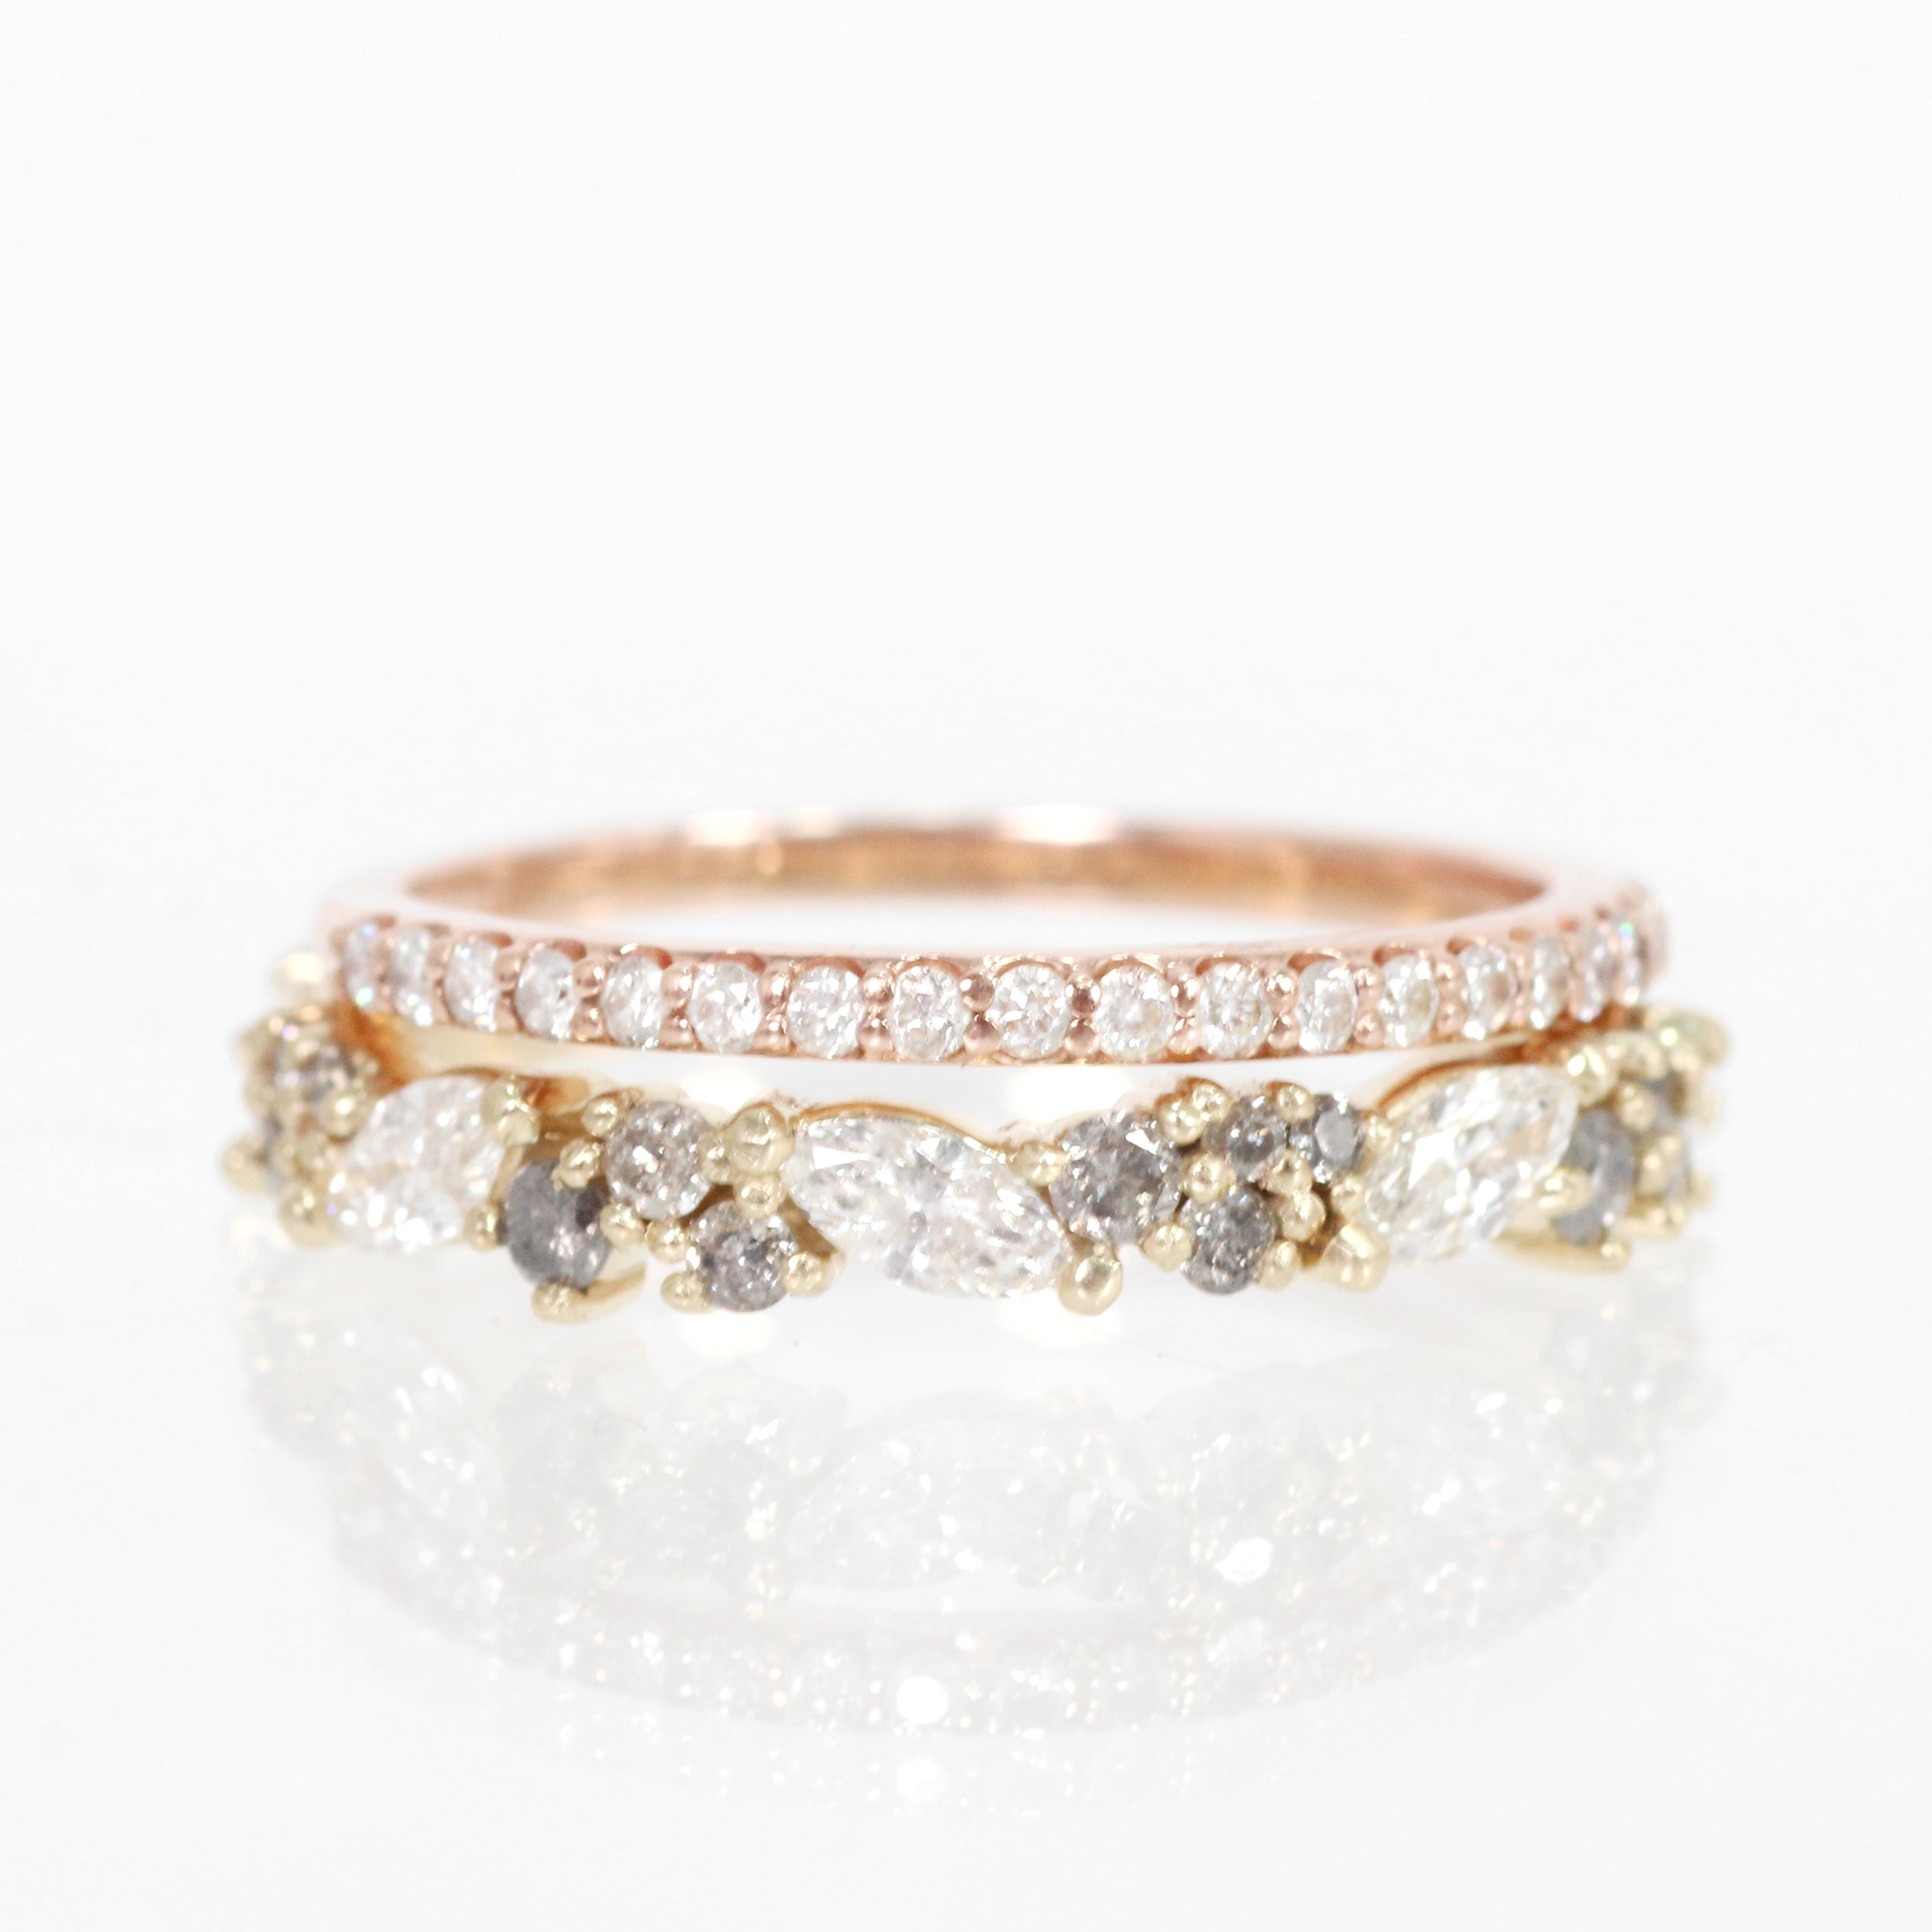 Genevieve Diamond Engagement Ring Band - White + Gray diamonds - Celestial Diamonds ® by Midwinter Co.